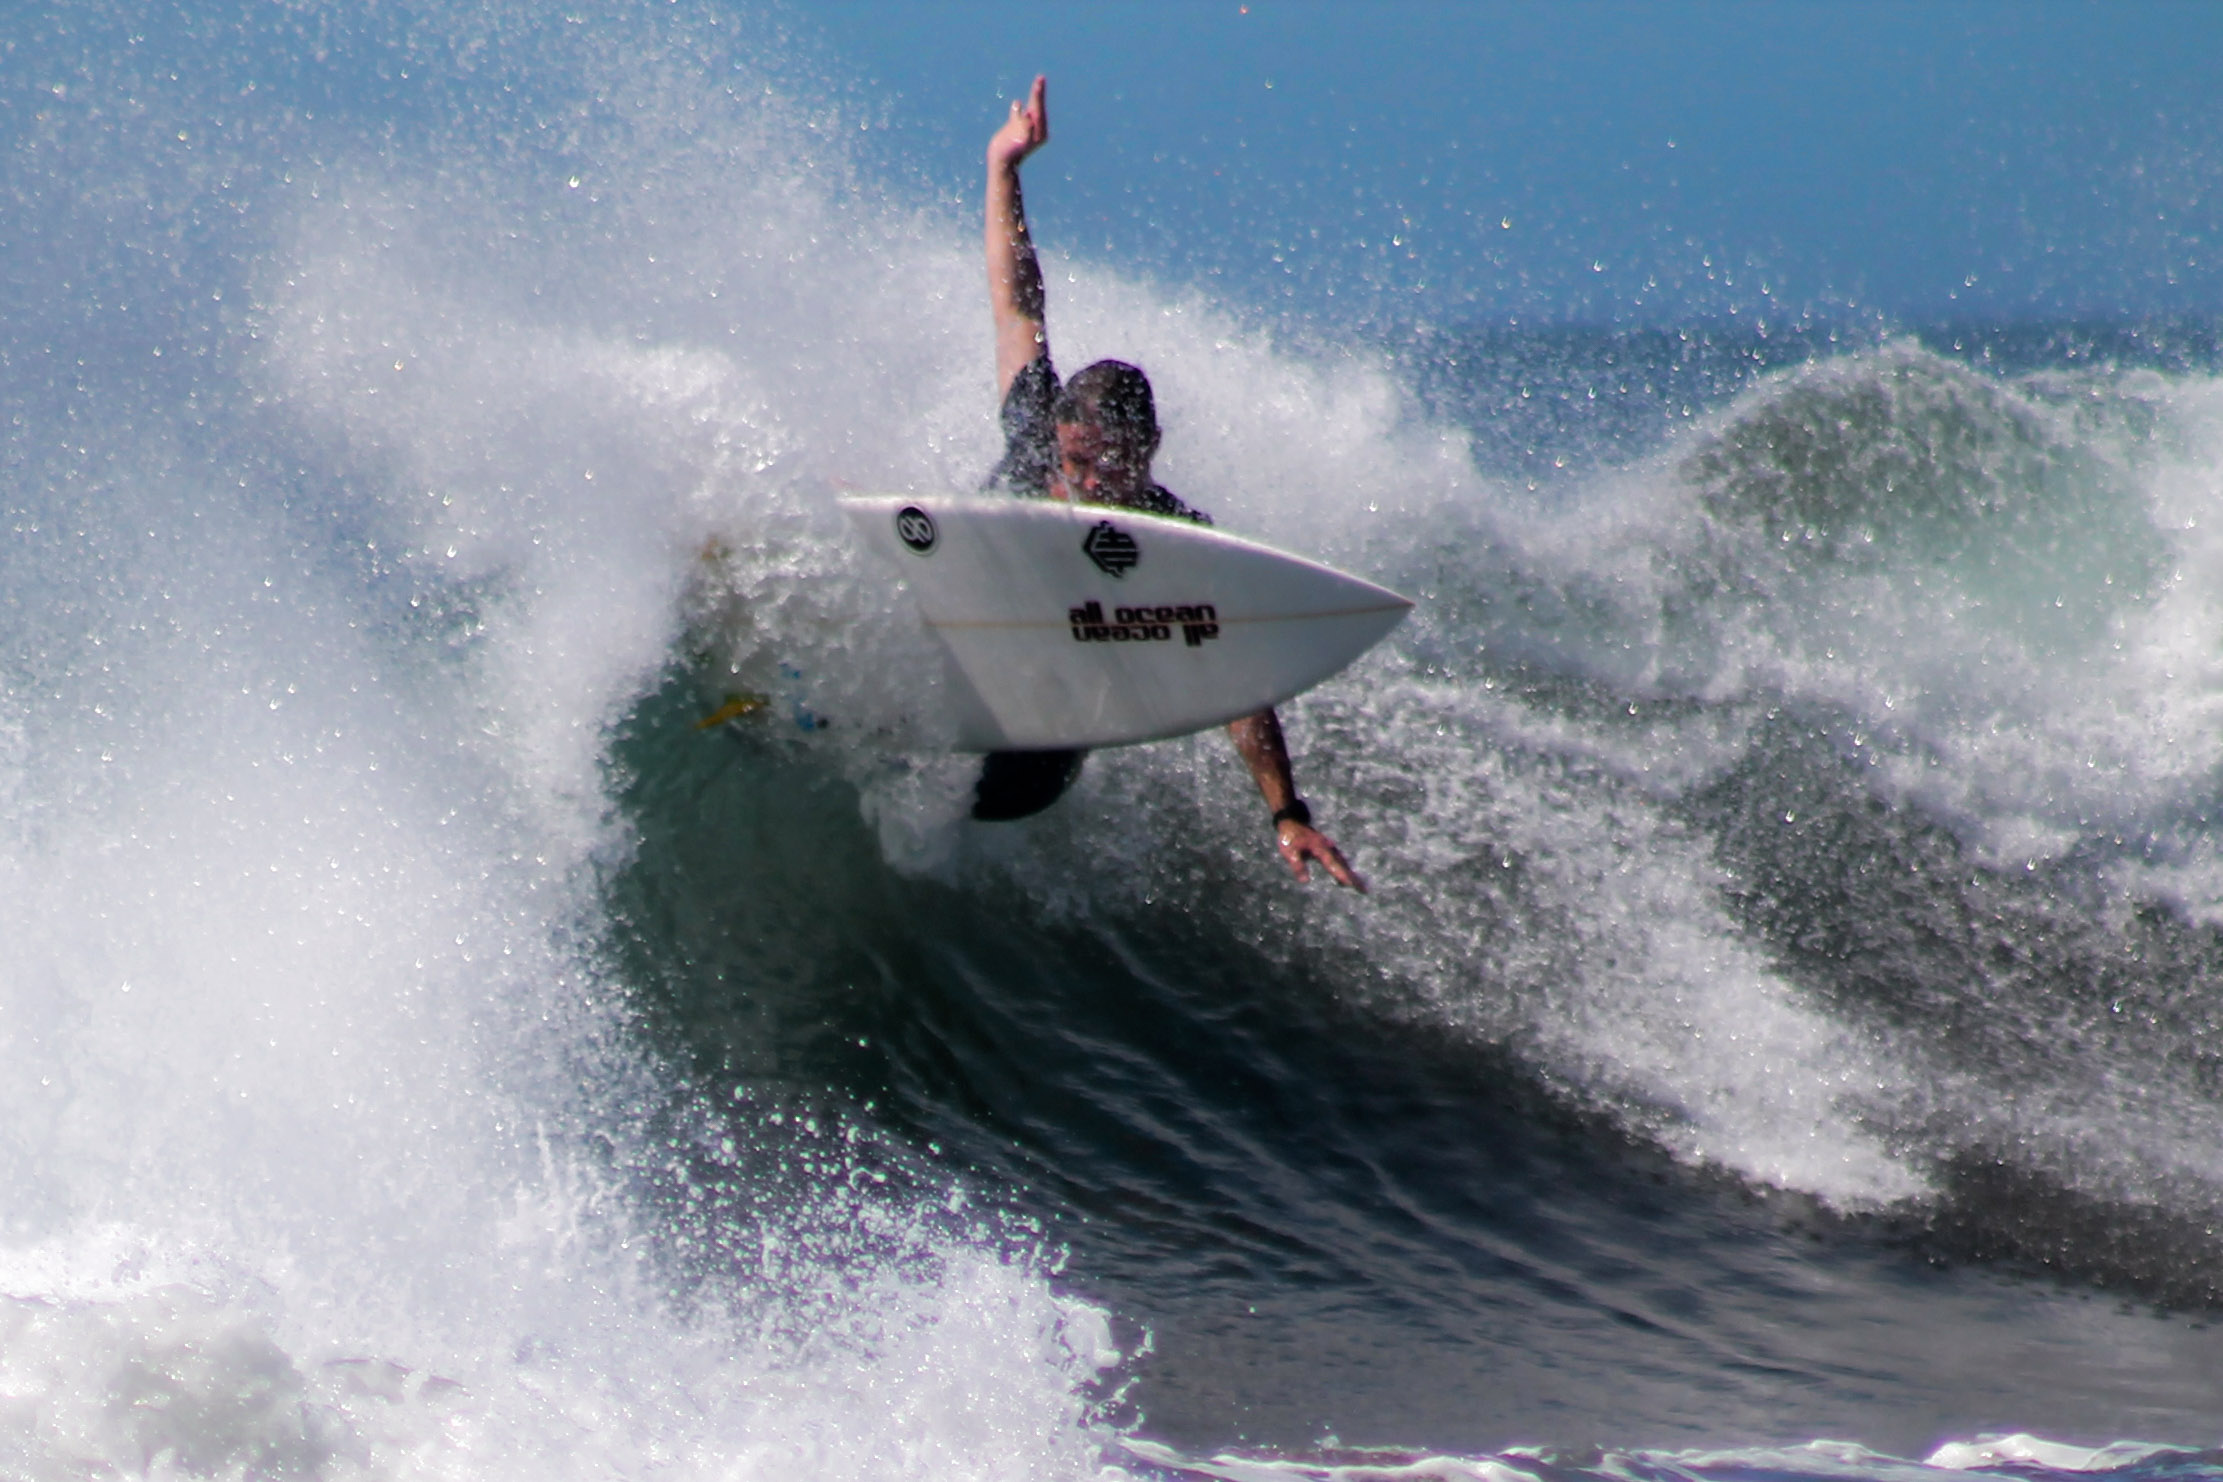 Surfing with type 1 diabetes at Closeout Hack Final